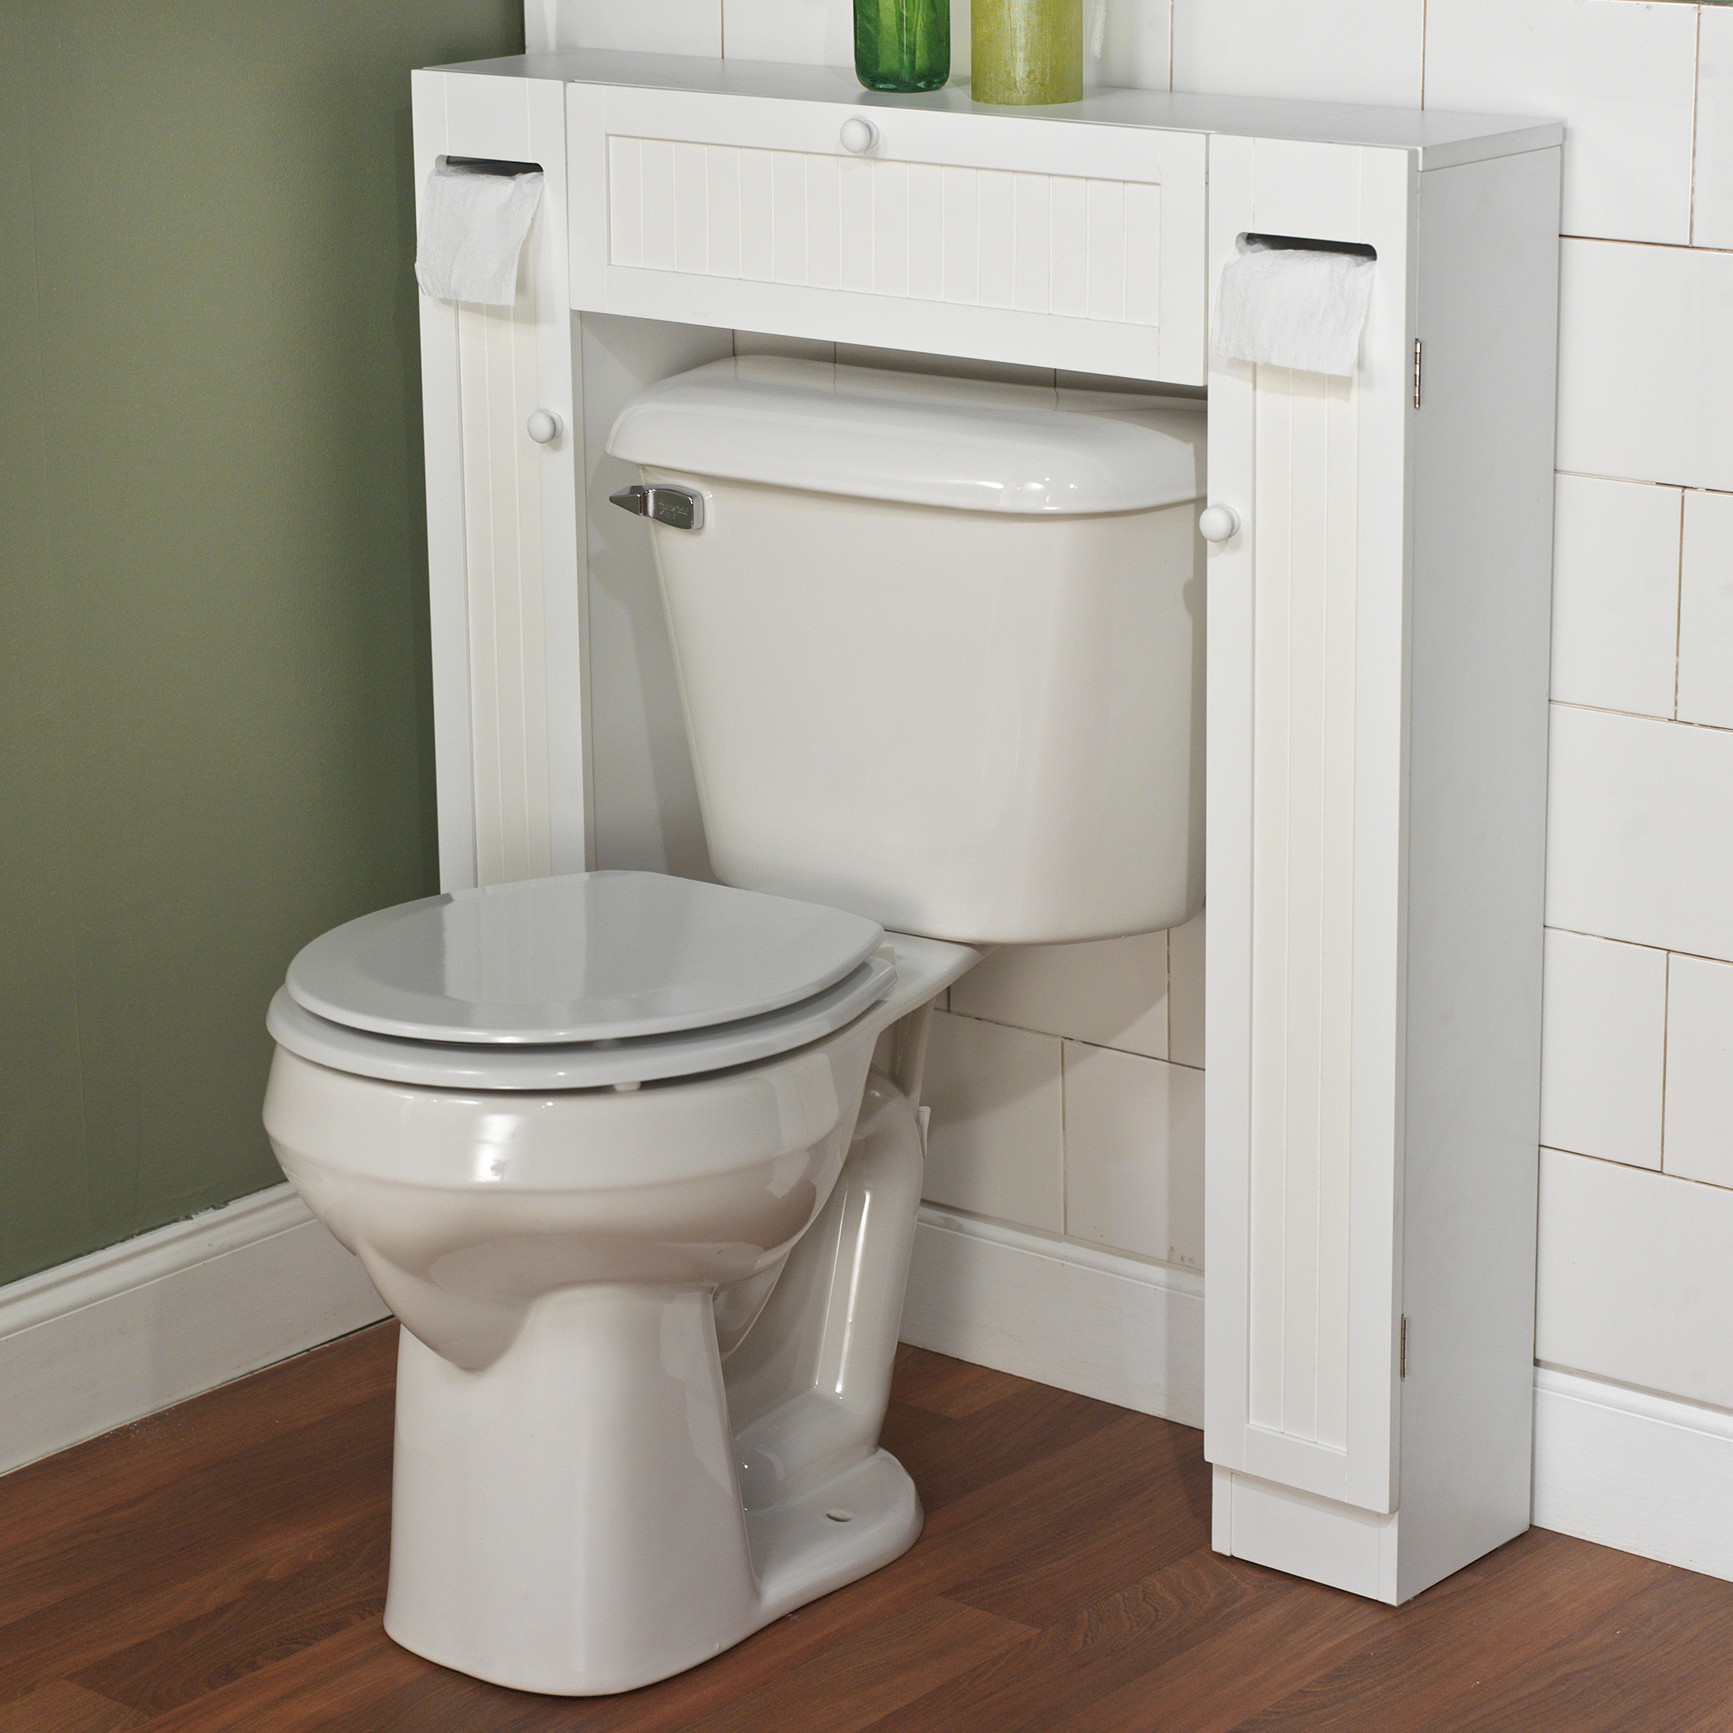 Improbable Home Accents Specially Attractive Bathroom Over with regard to dimensions 1733 X 1733